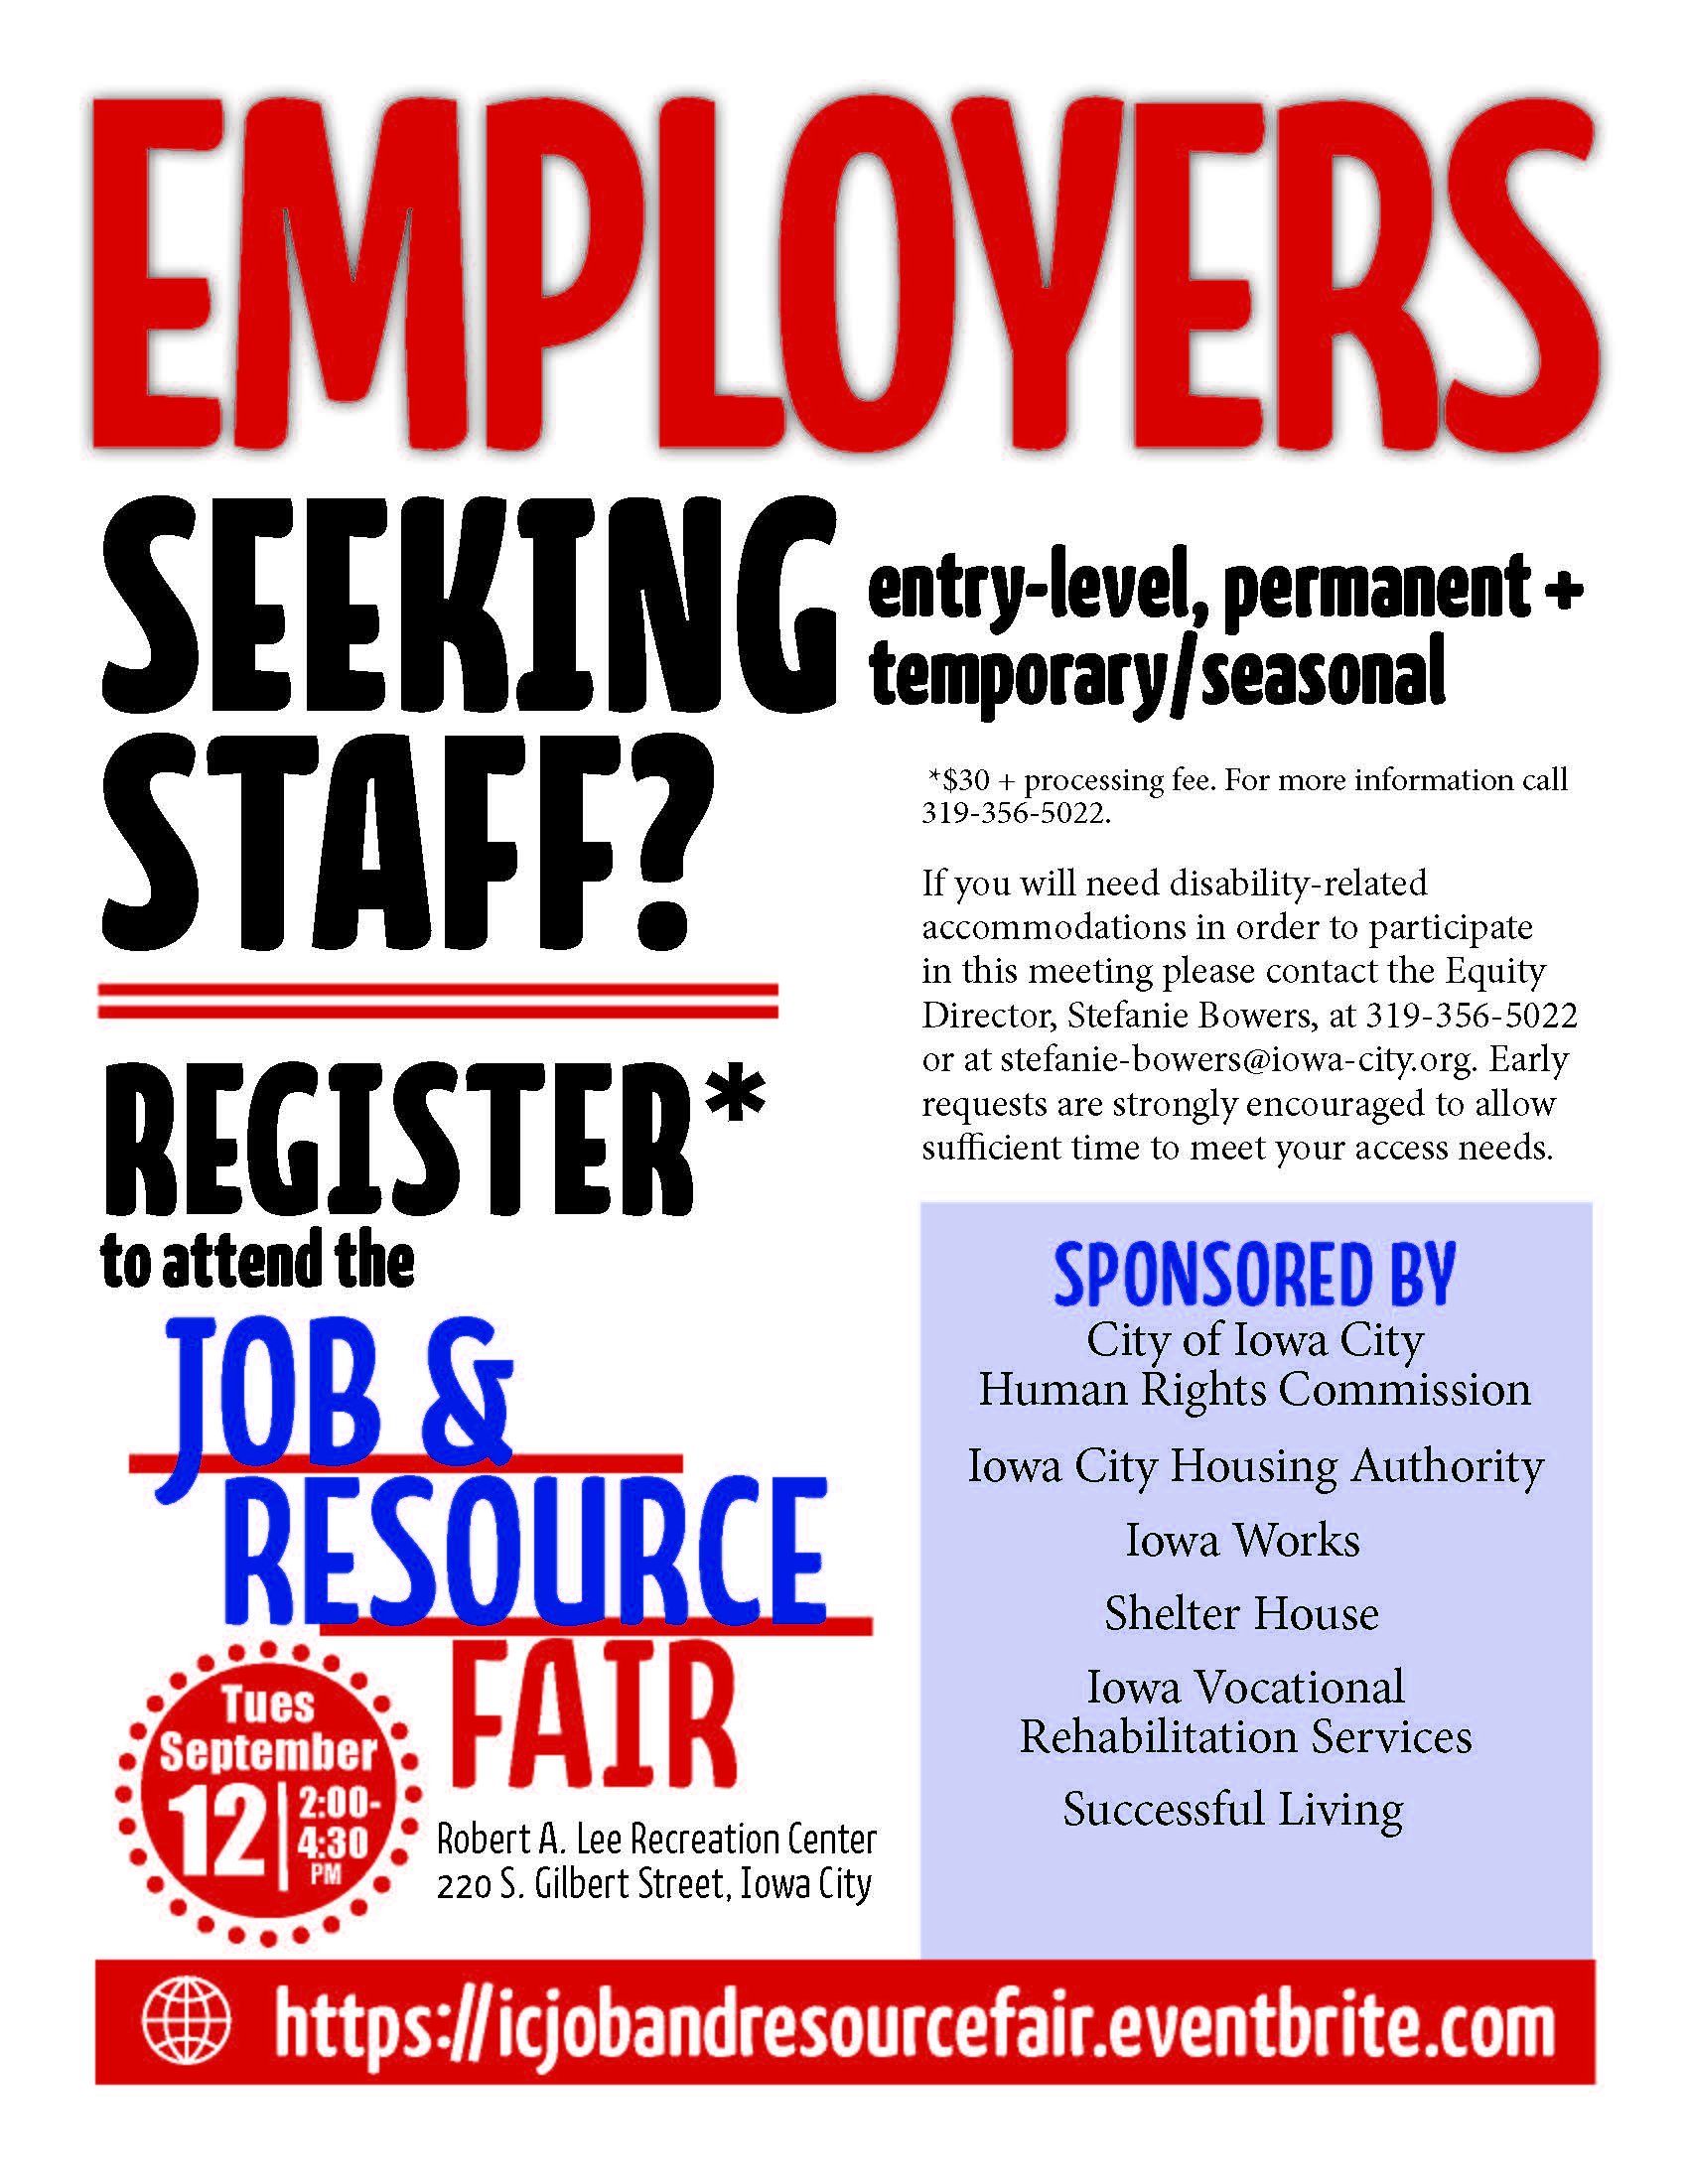 Poster for upcoming Job and Resource Fair